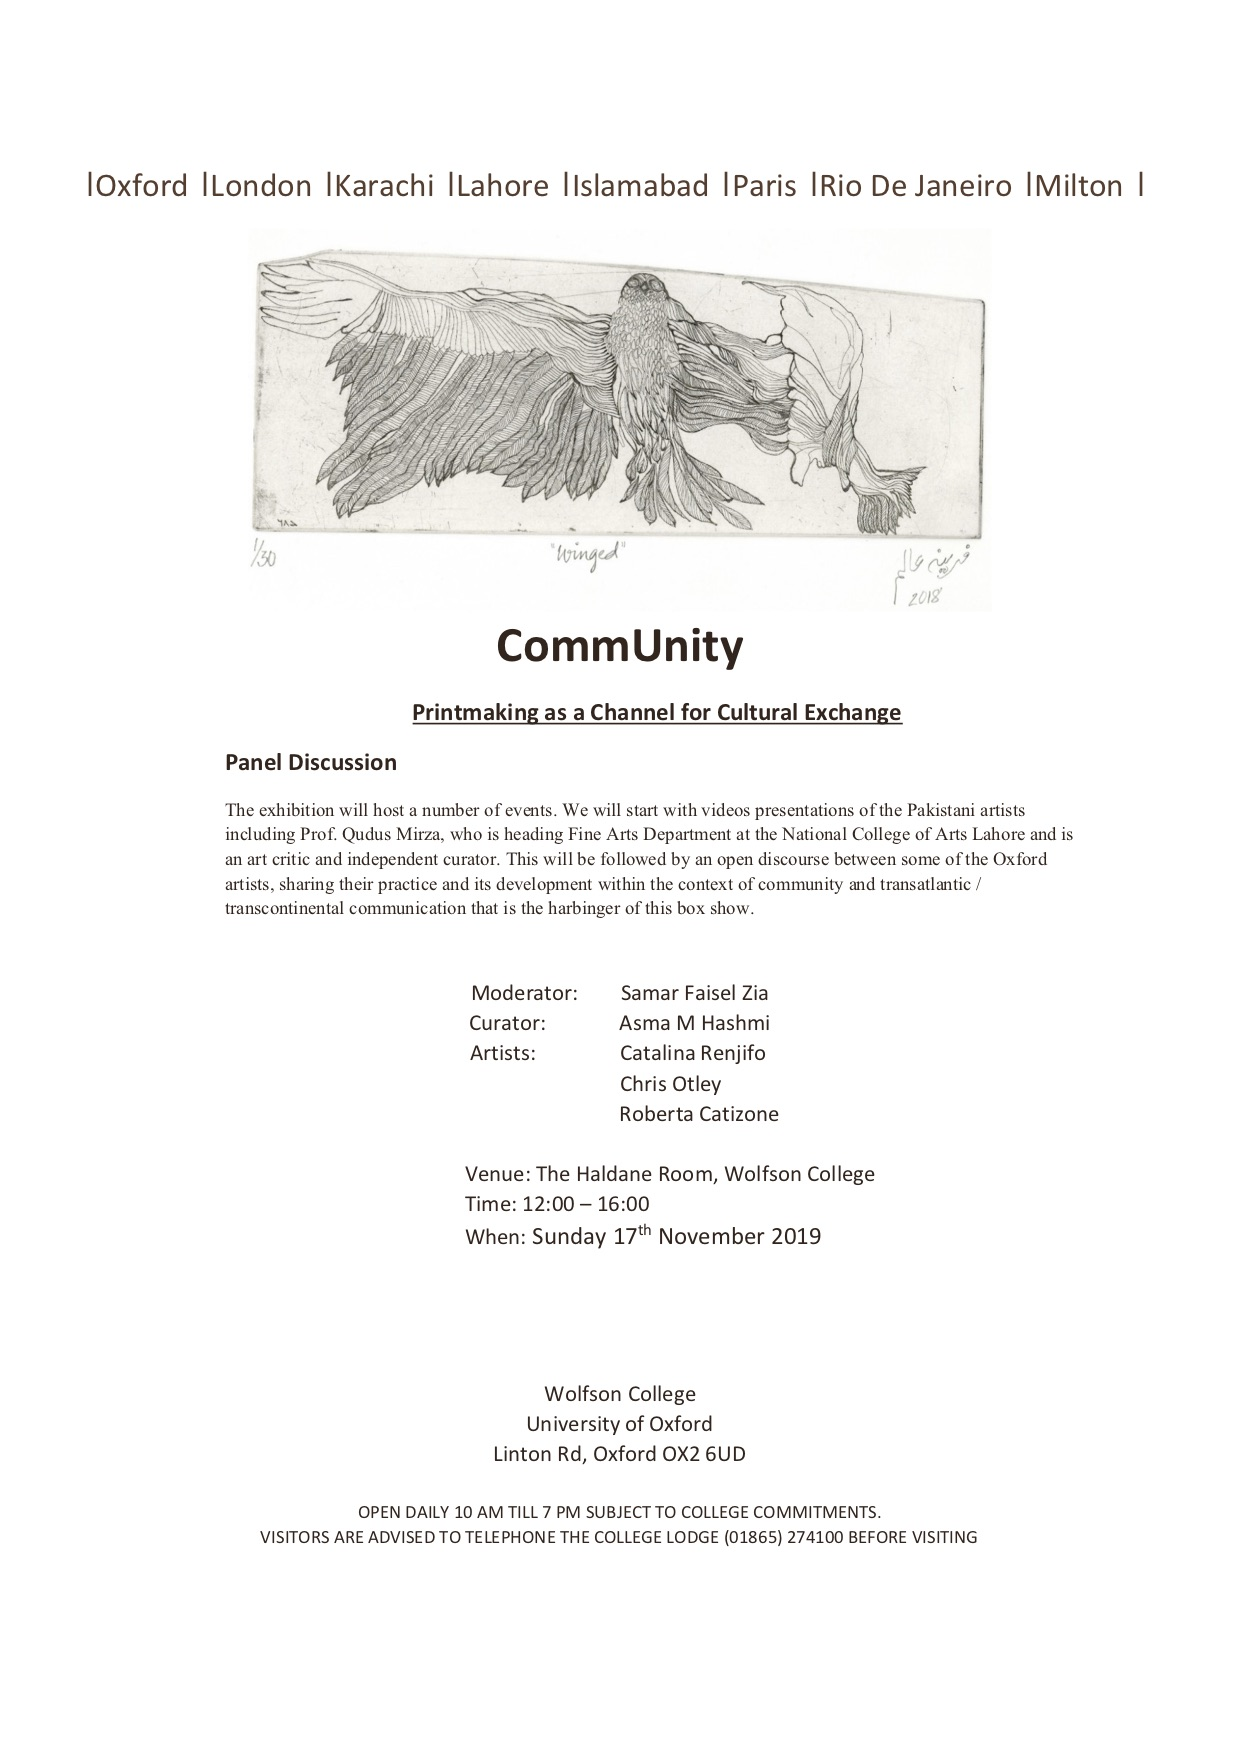 CommUnity Panel Discussion - Printmaking as a Channel for Cultural Exchange